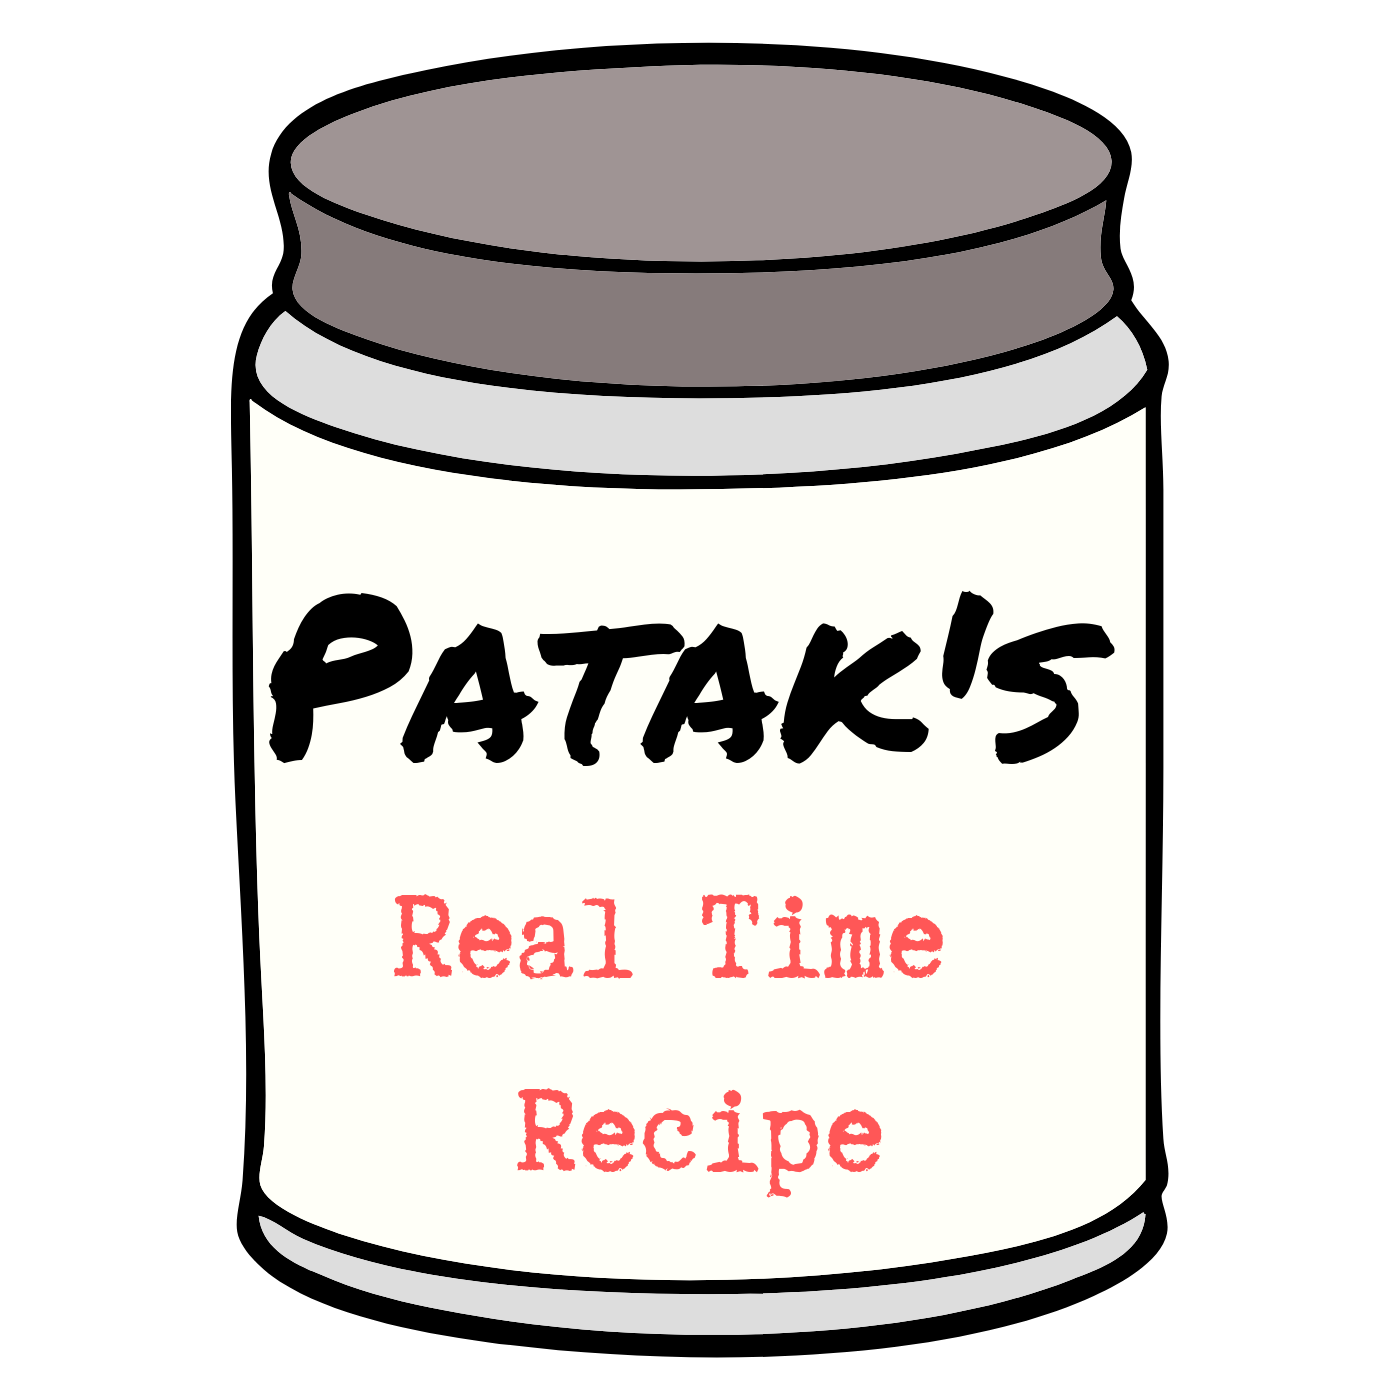 736 - Real Time Patak's